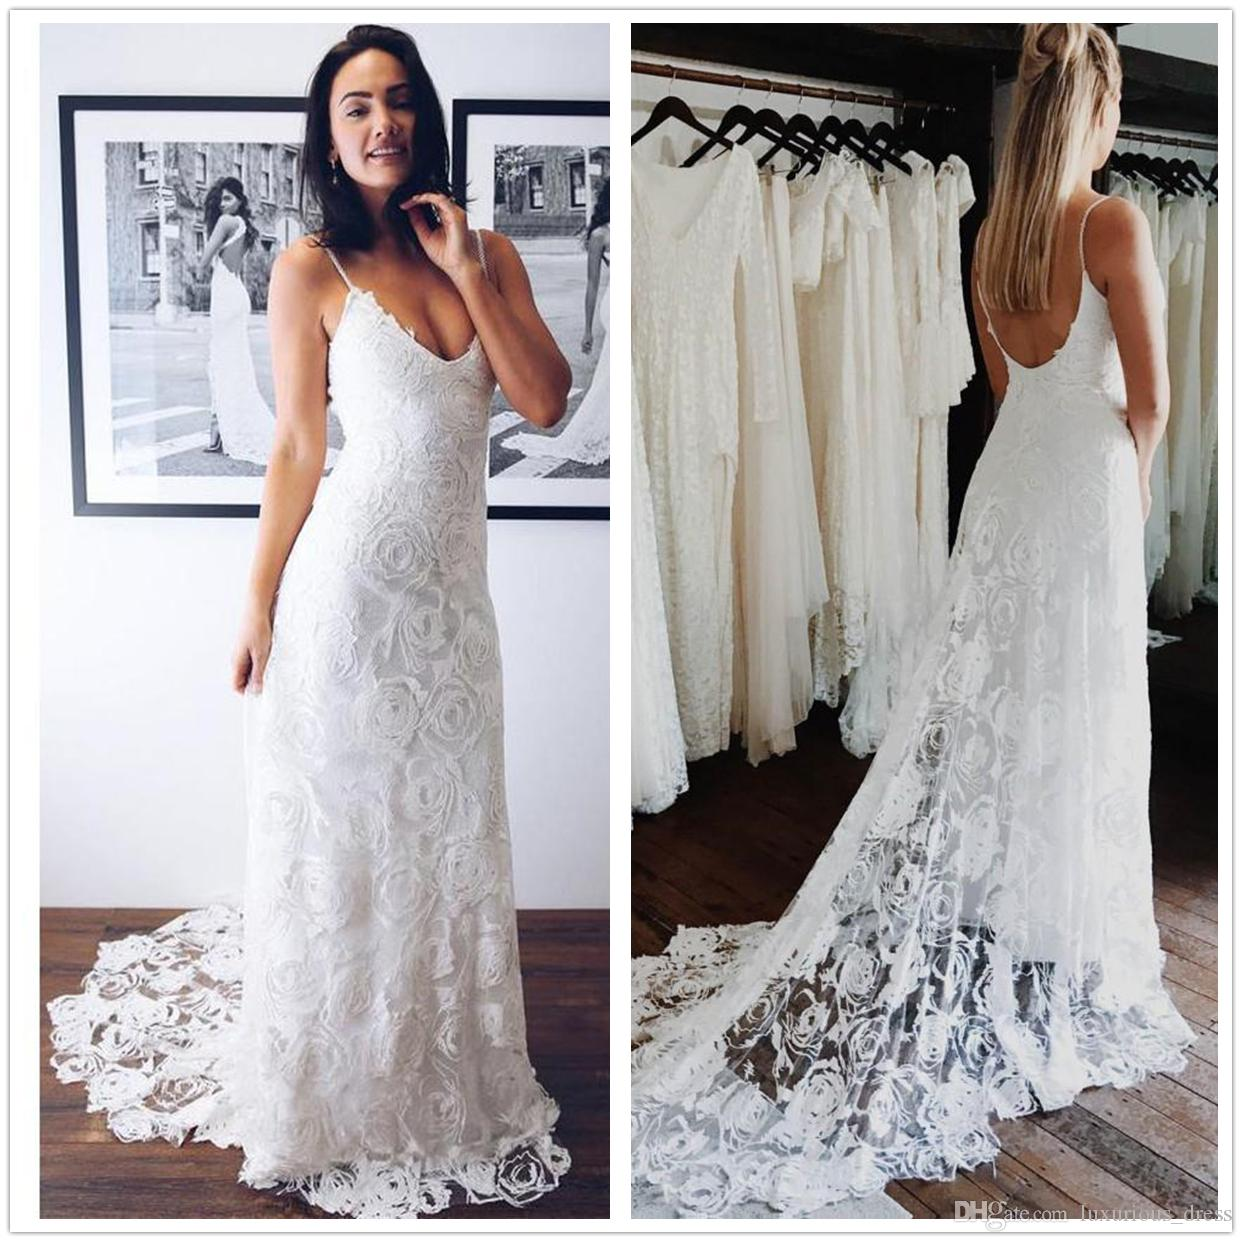 281bdab546e69 Discount Vintage Lace Wedding Dresses Sexy Deep V Neck Backless Bohemia  2019 Wedding Gowns Court Train Long Bridal Dress Robe De Mariée A Line Dress  .